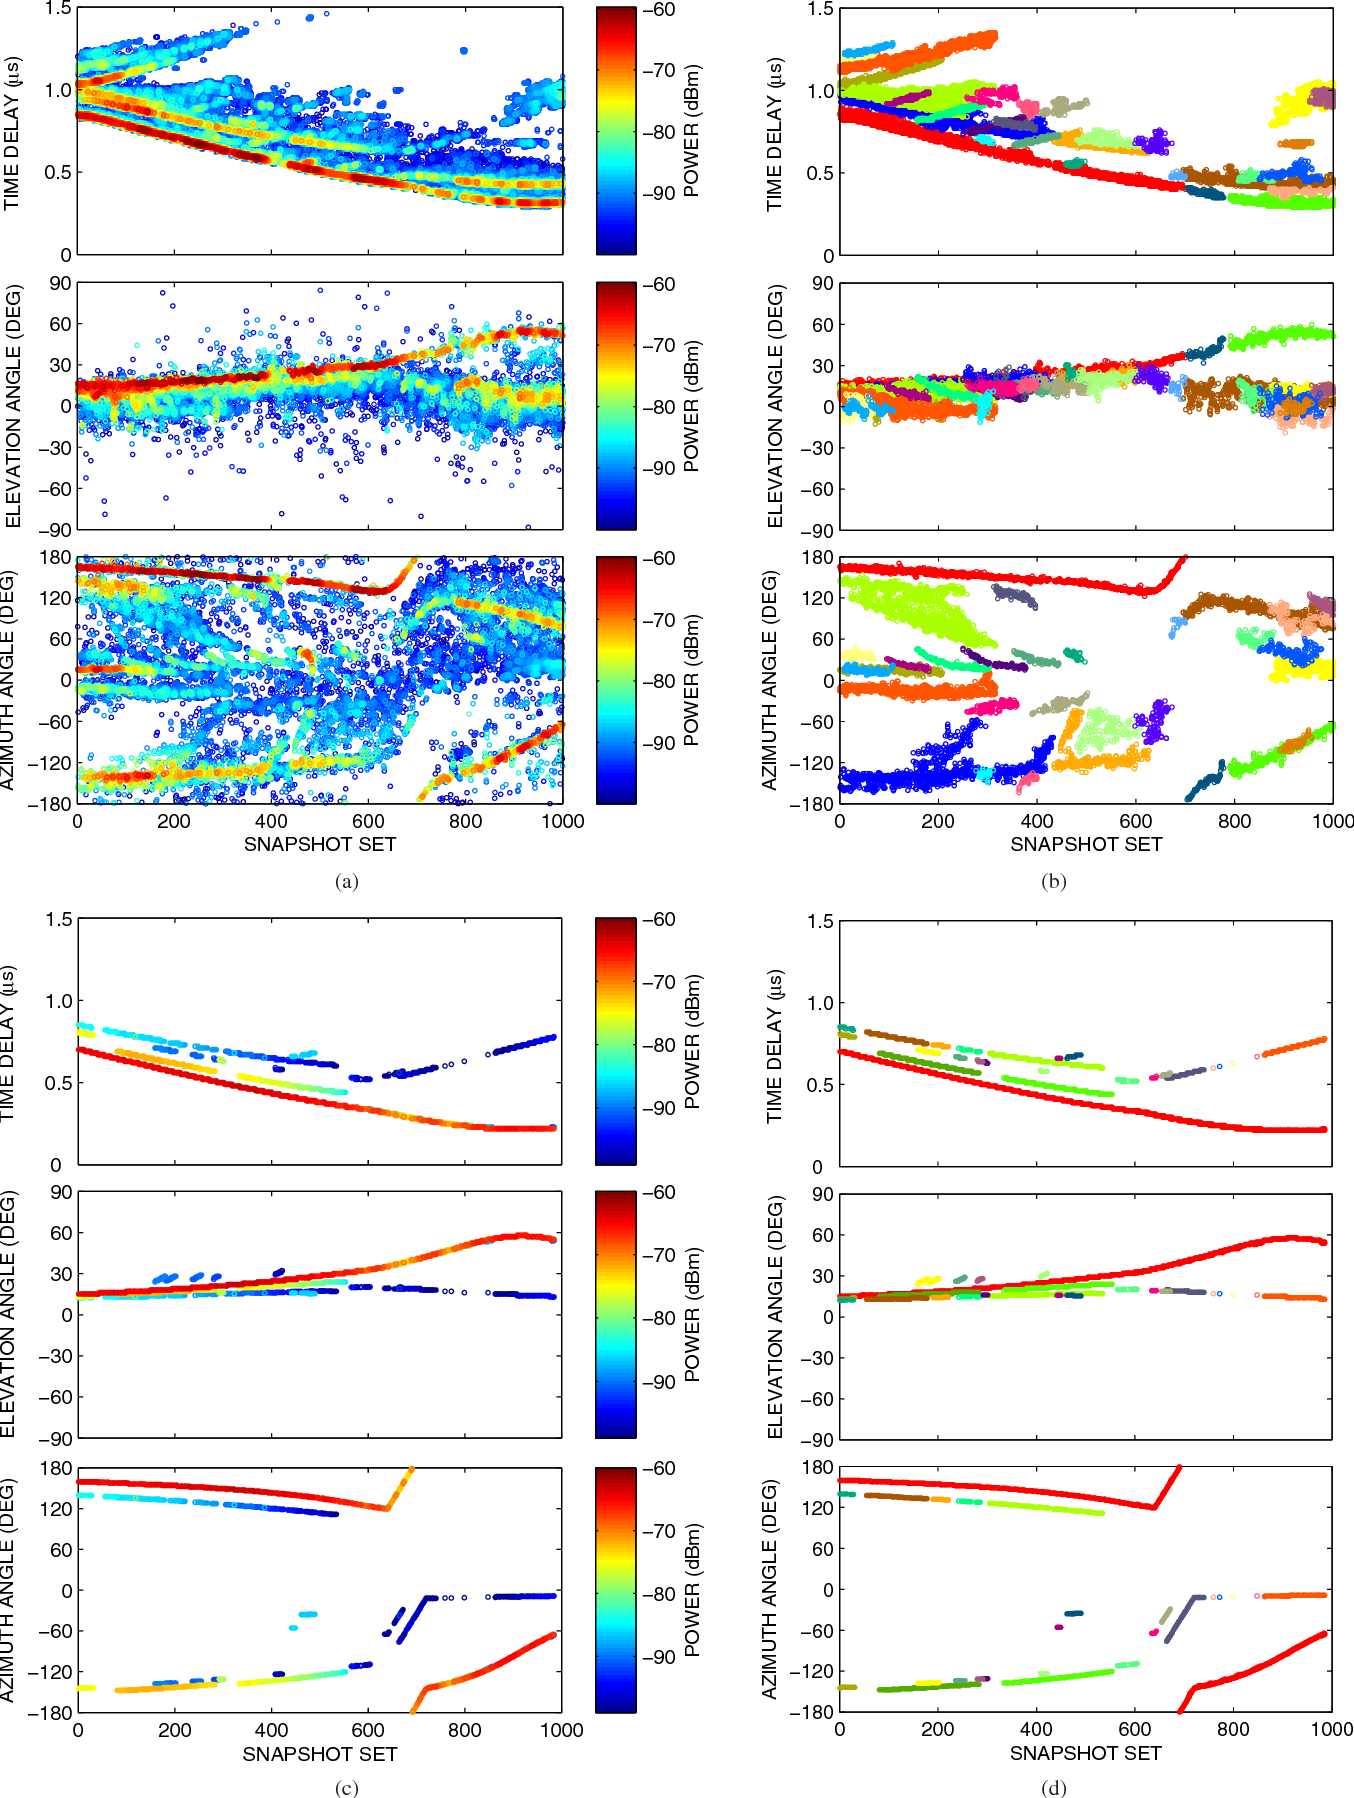 Figure 3: Angular-temporal results of (a) the estimated MPCs from the measurements, (b) the clustered MPCs and (c) the estimated MPCs using simulations.